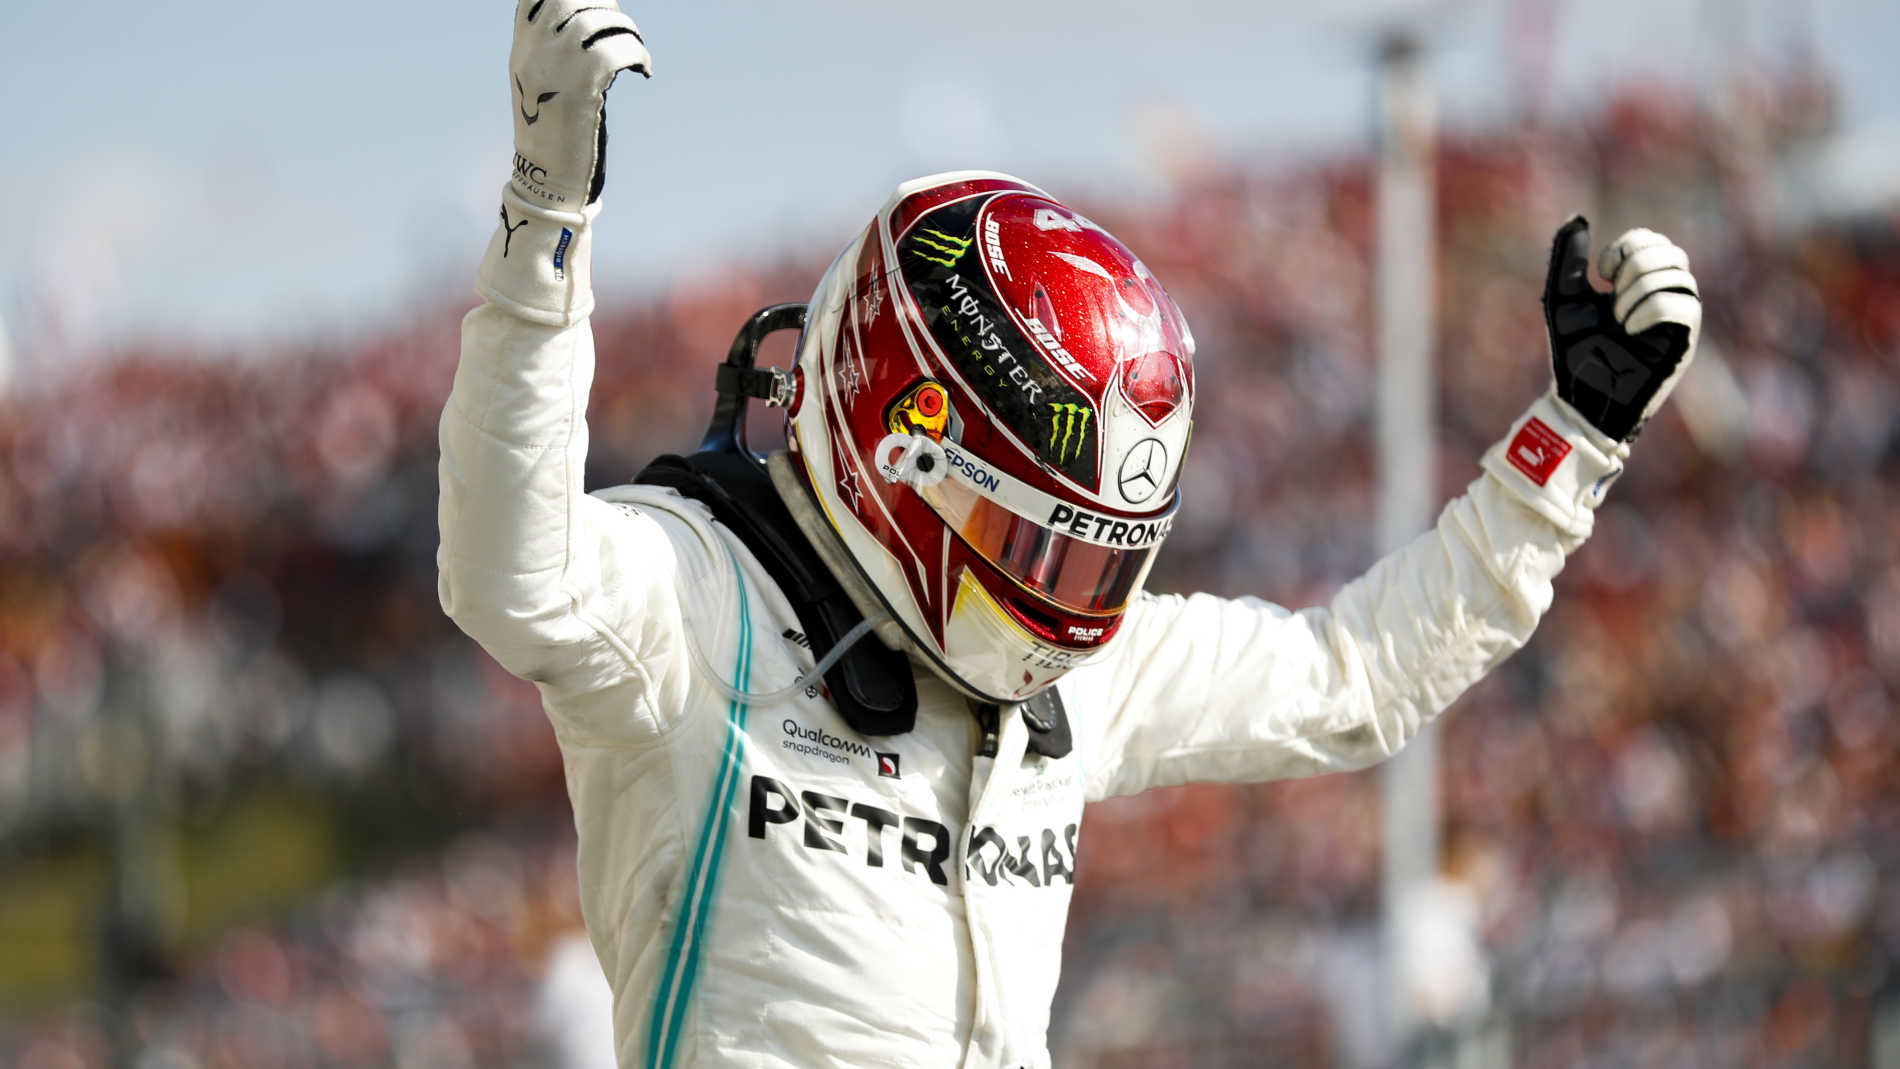 St Charles Mercedes >> 'I was on the limit all the way' says Hamilton after thrilling Hungarian GP win | Formula 1®